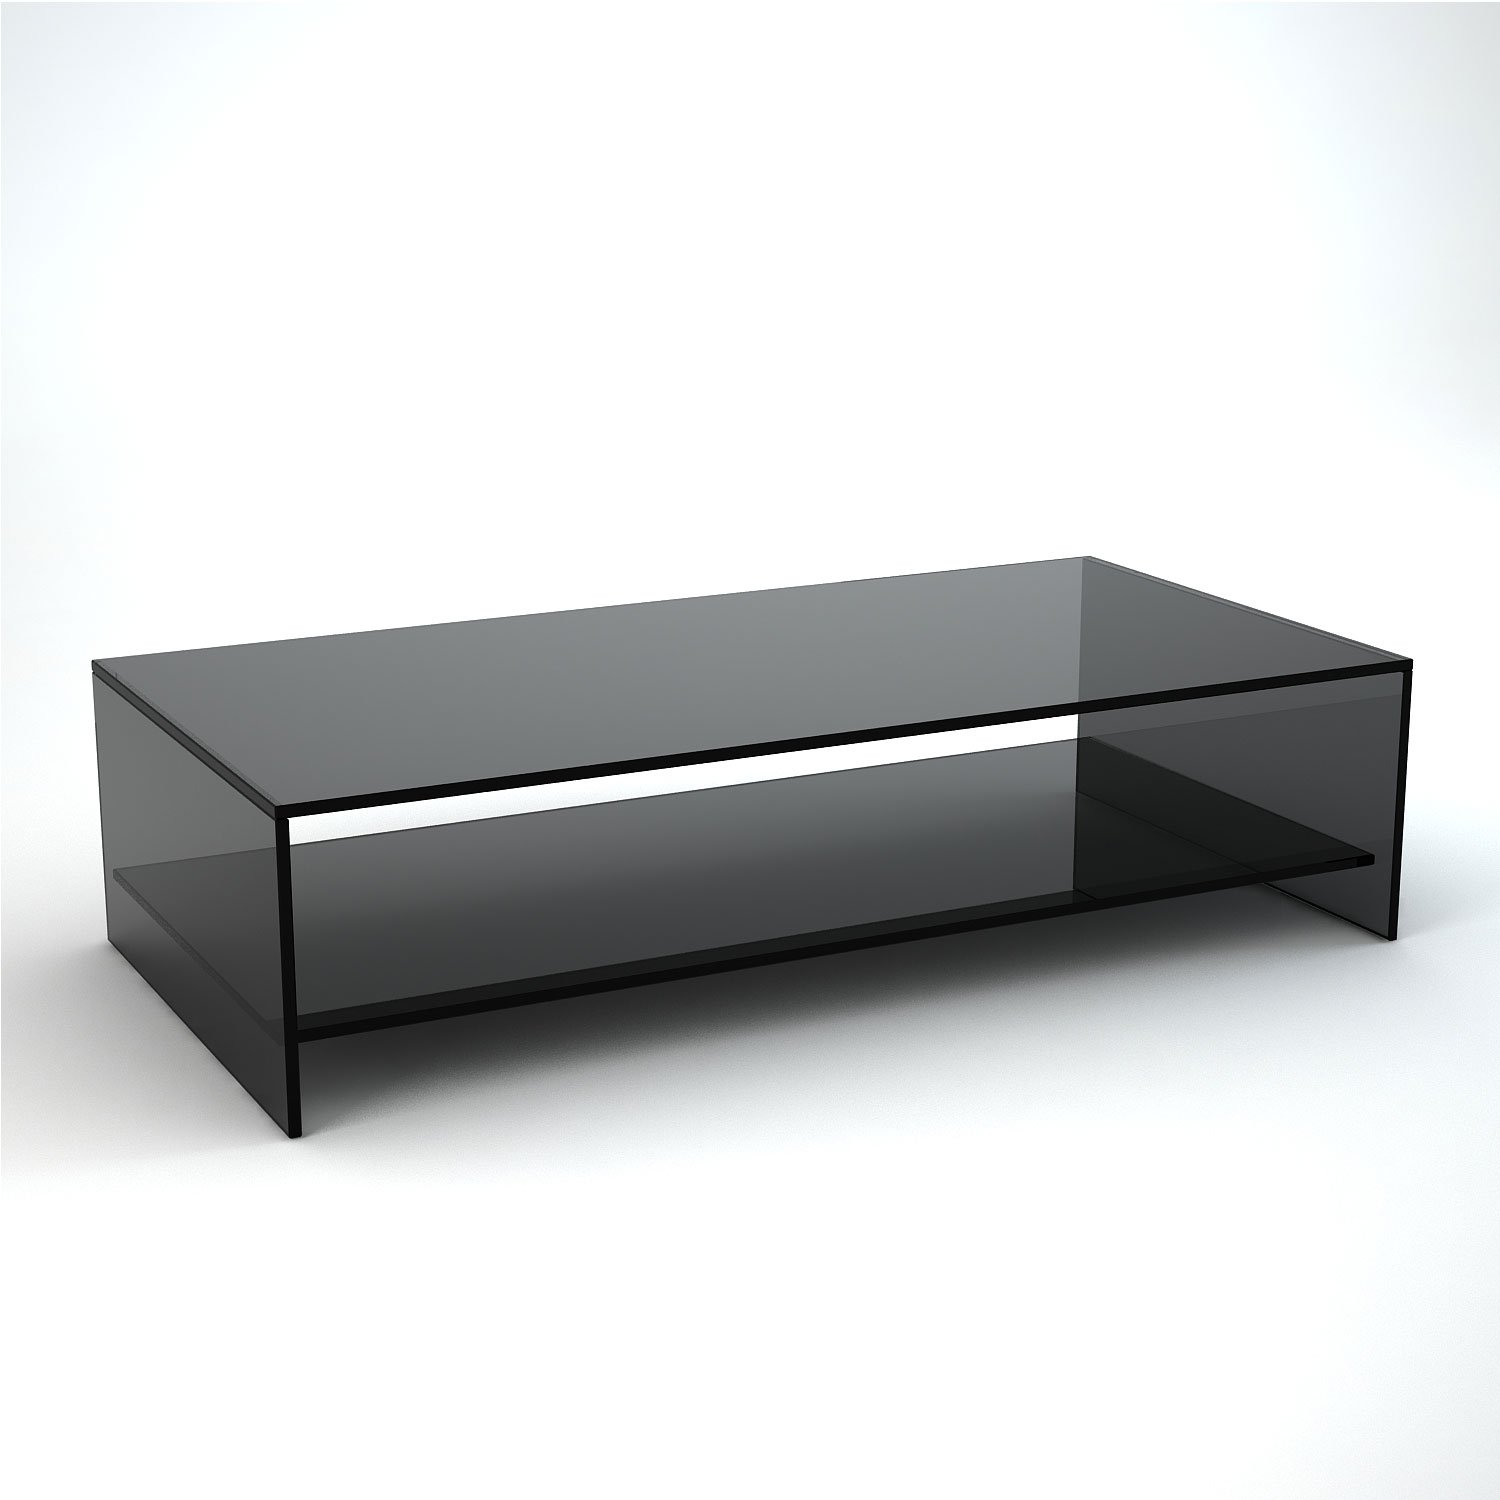 Judd Rectangular Smoked Glass Coffee Table with Shelf Klarity